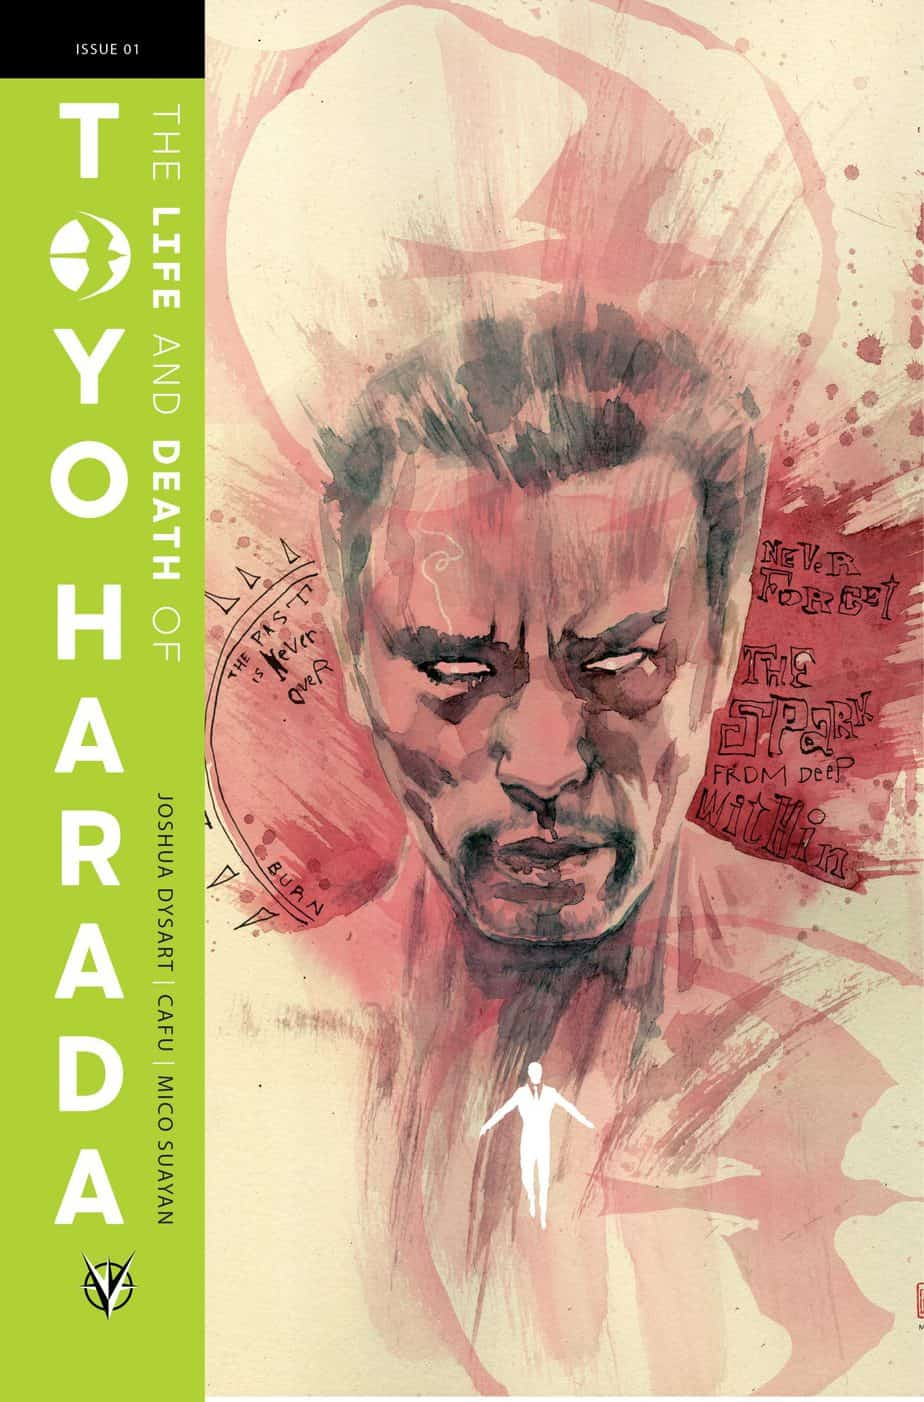 THE LIFE AND DEATH OF TOYO HARADA #1 (of 6) – Cover C by David Mack